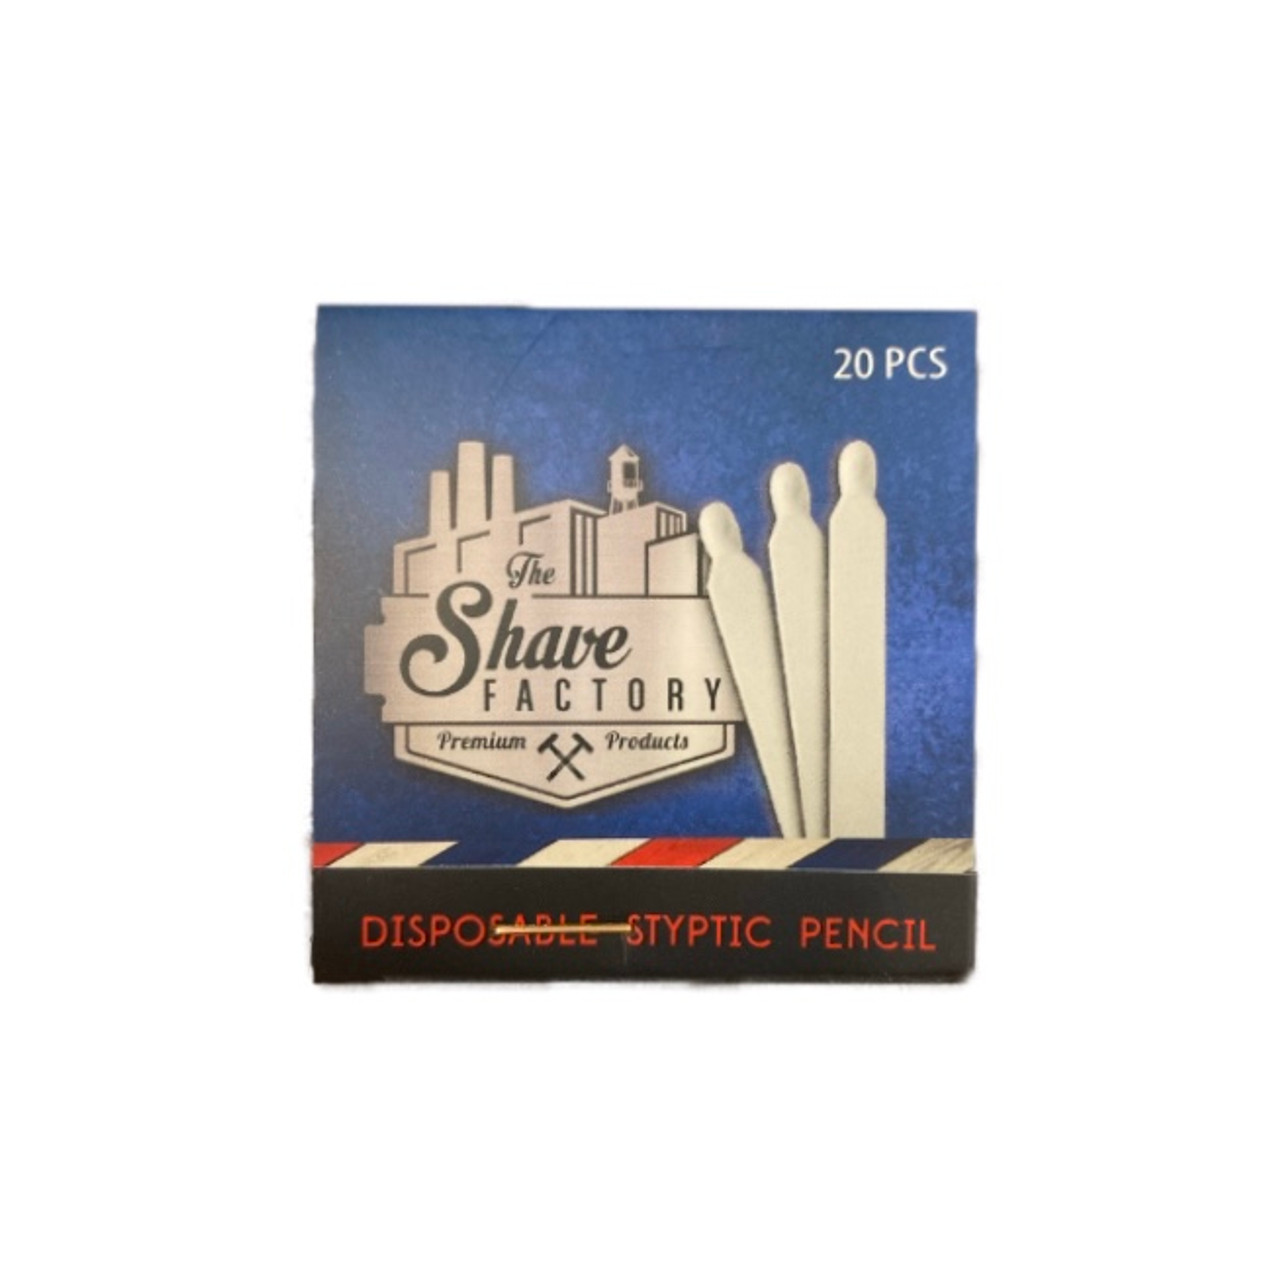 Disposable Styptic Pencil - The Shave Factory